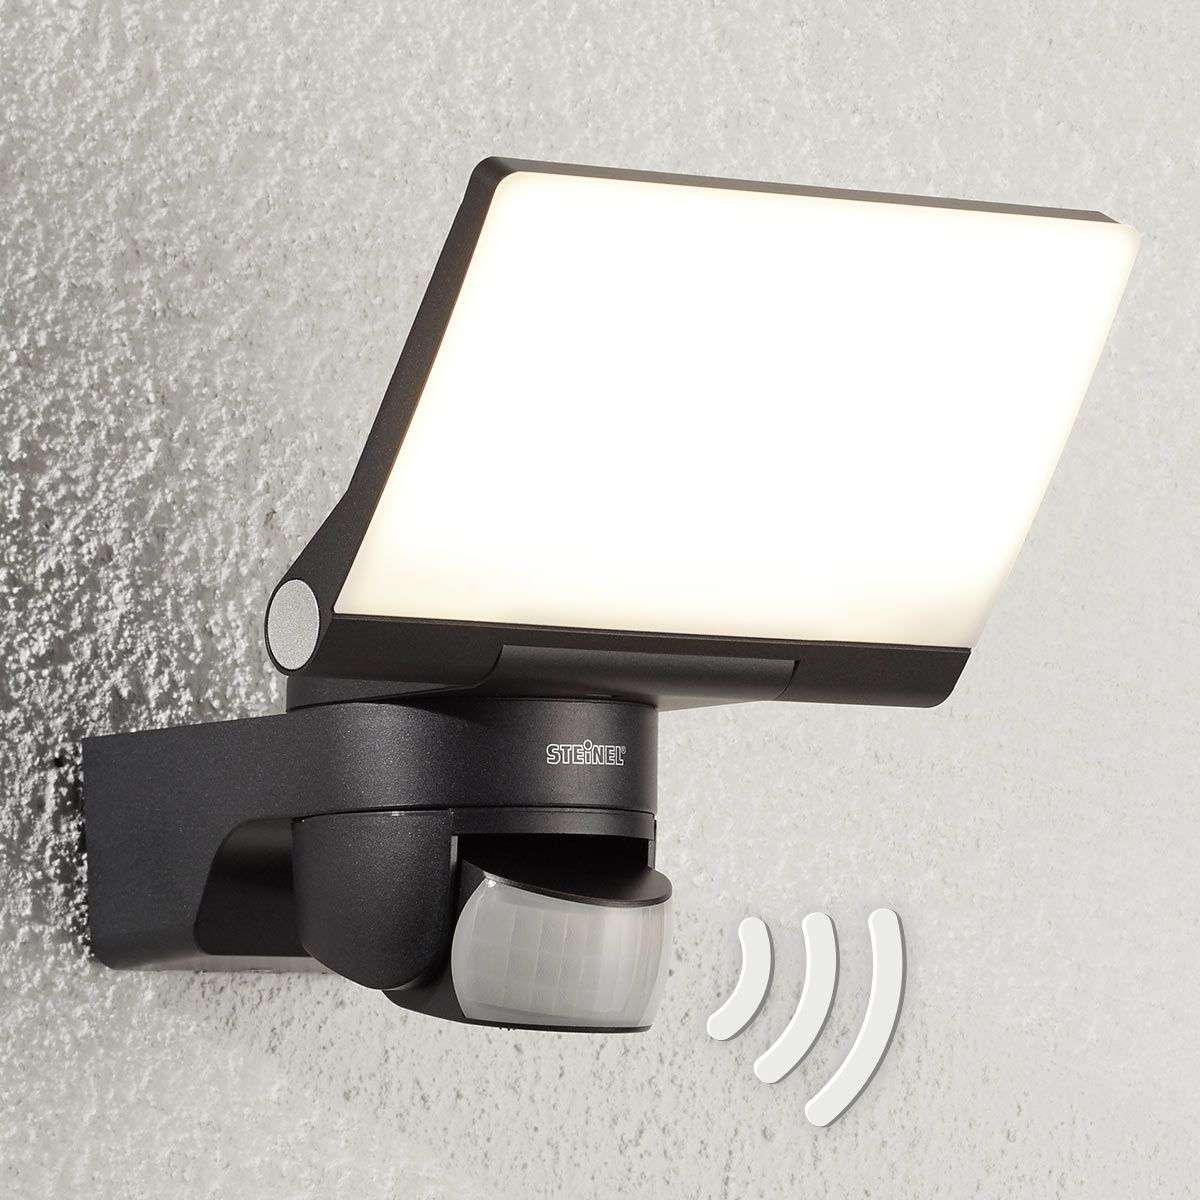 LED wall light XLED HOME 2 with motion sensor | Lights.co.uk